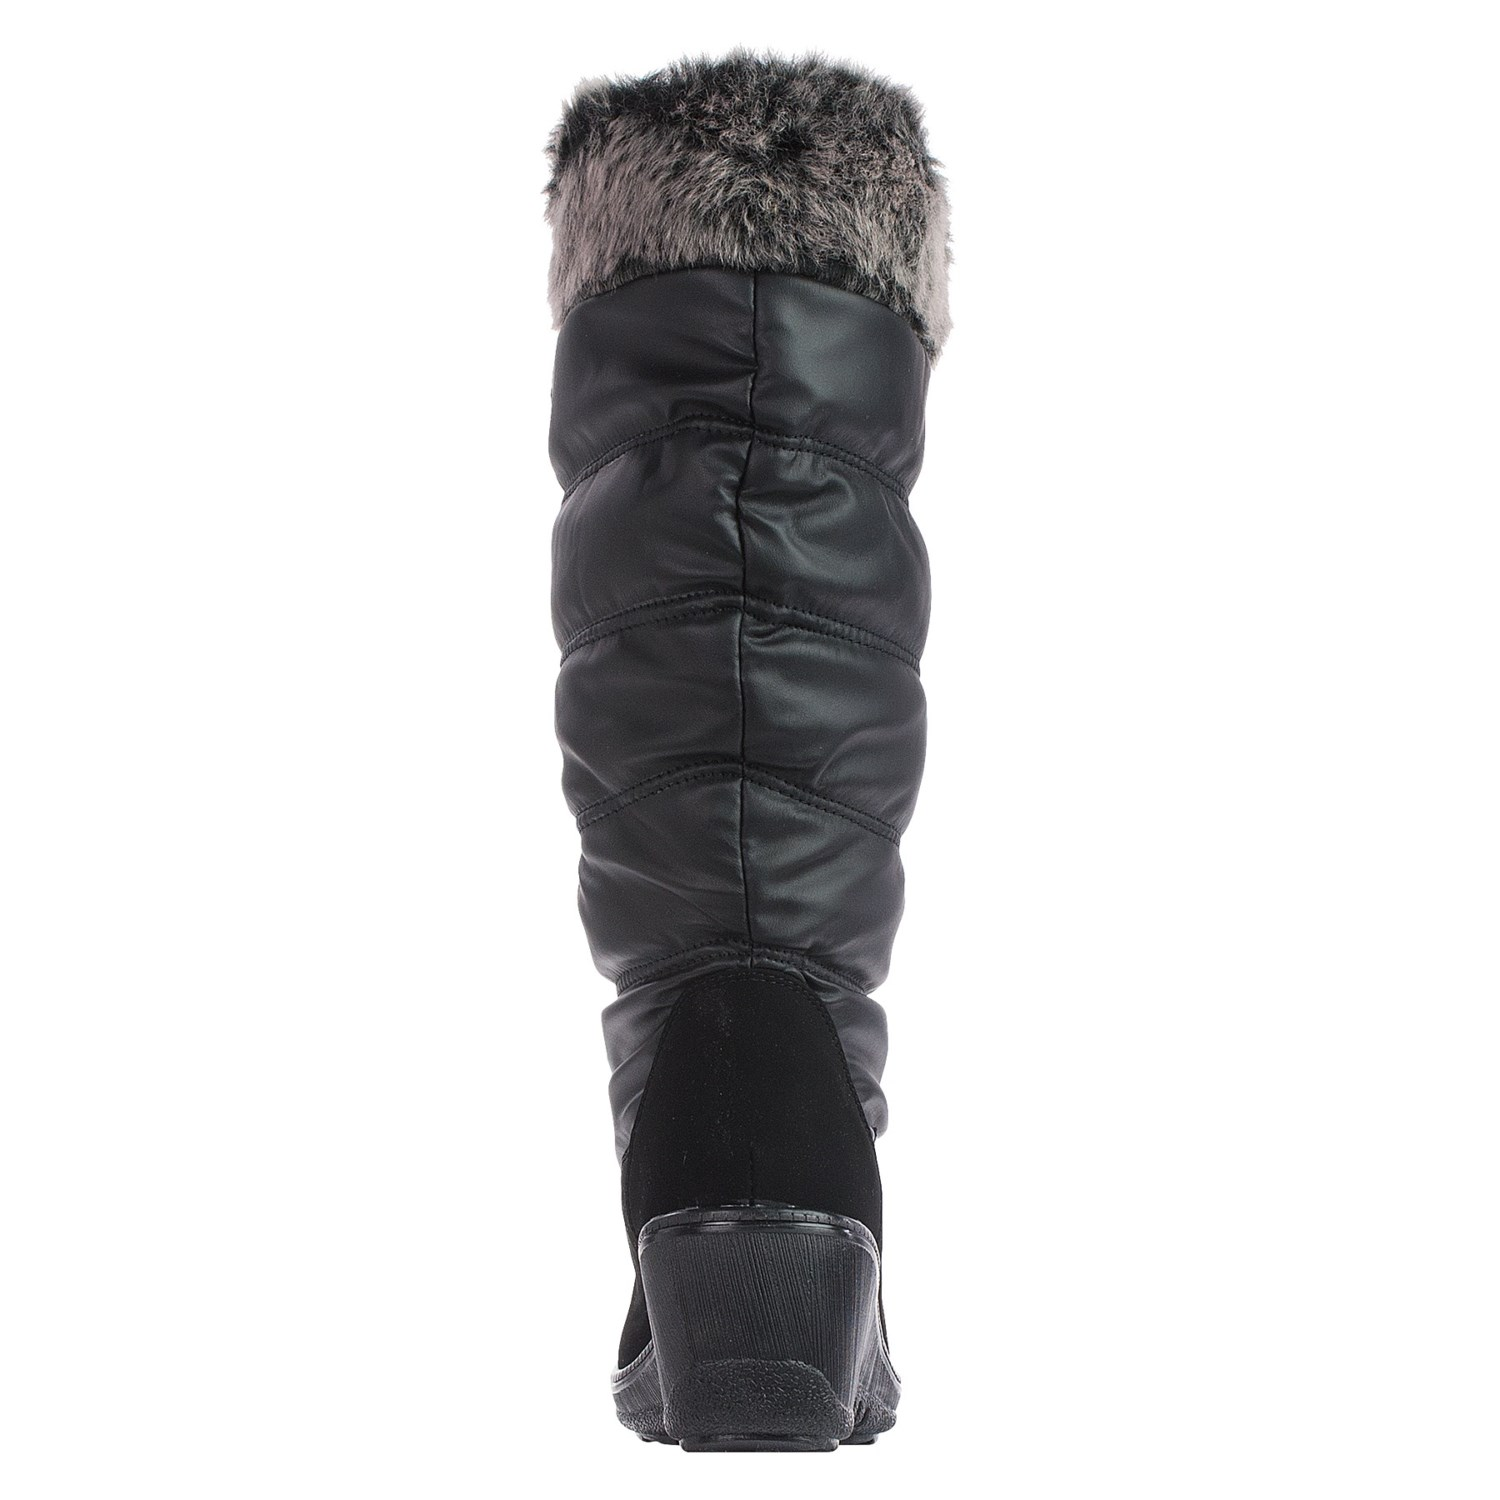 aquatherm by santana canada yule snow boots for